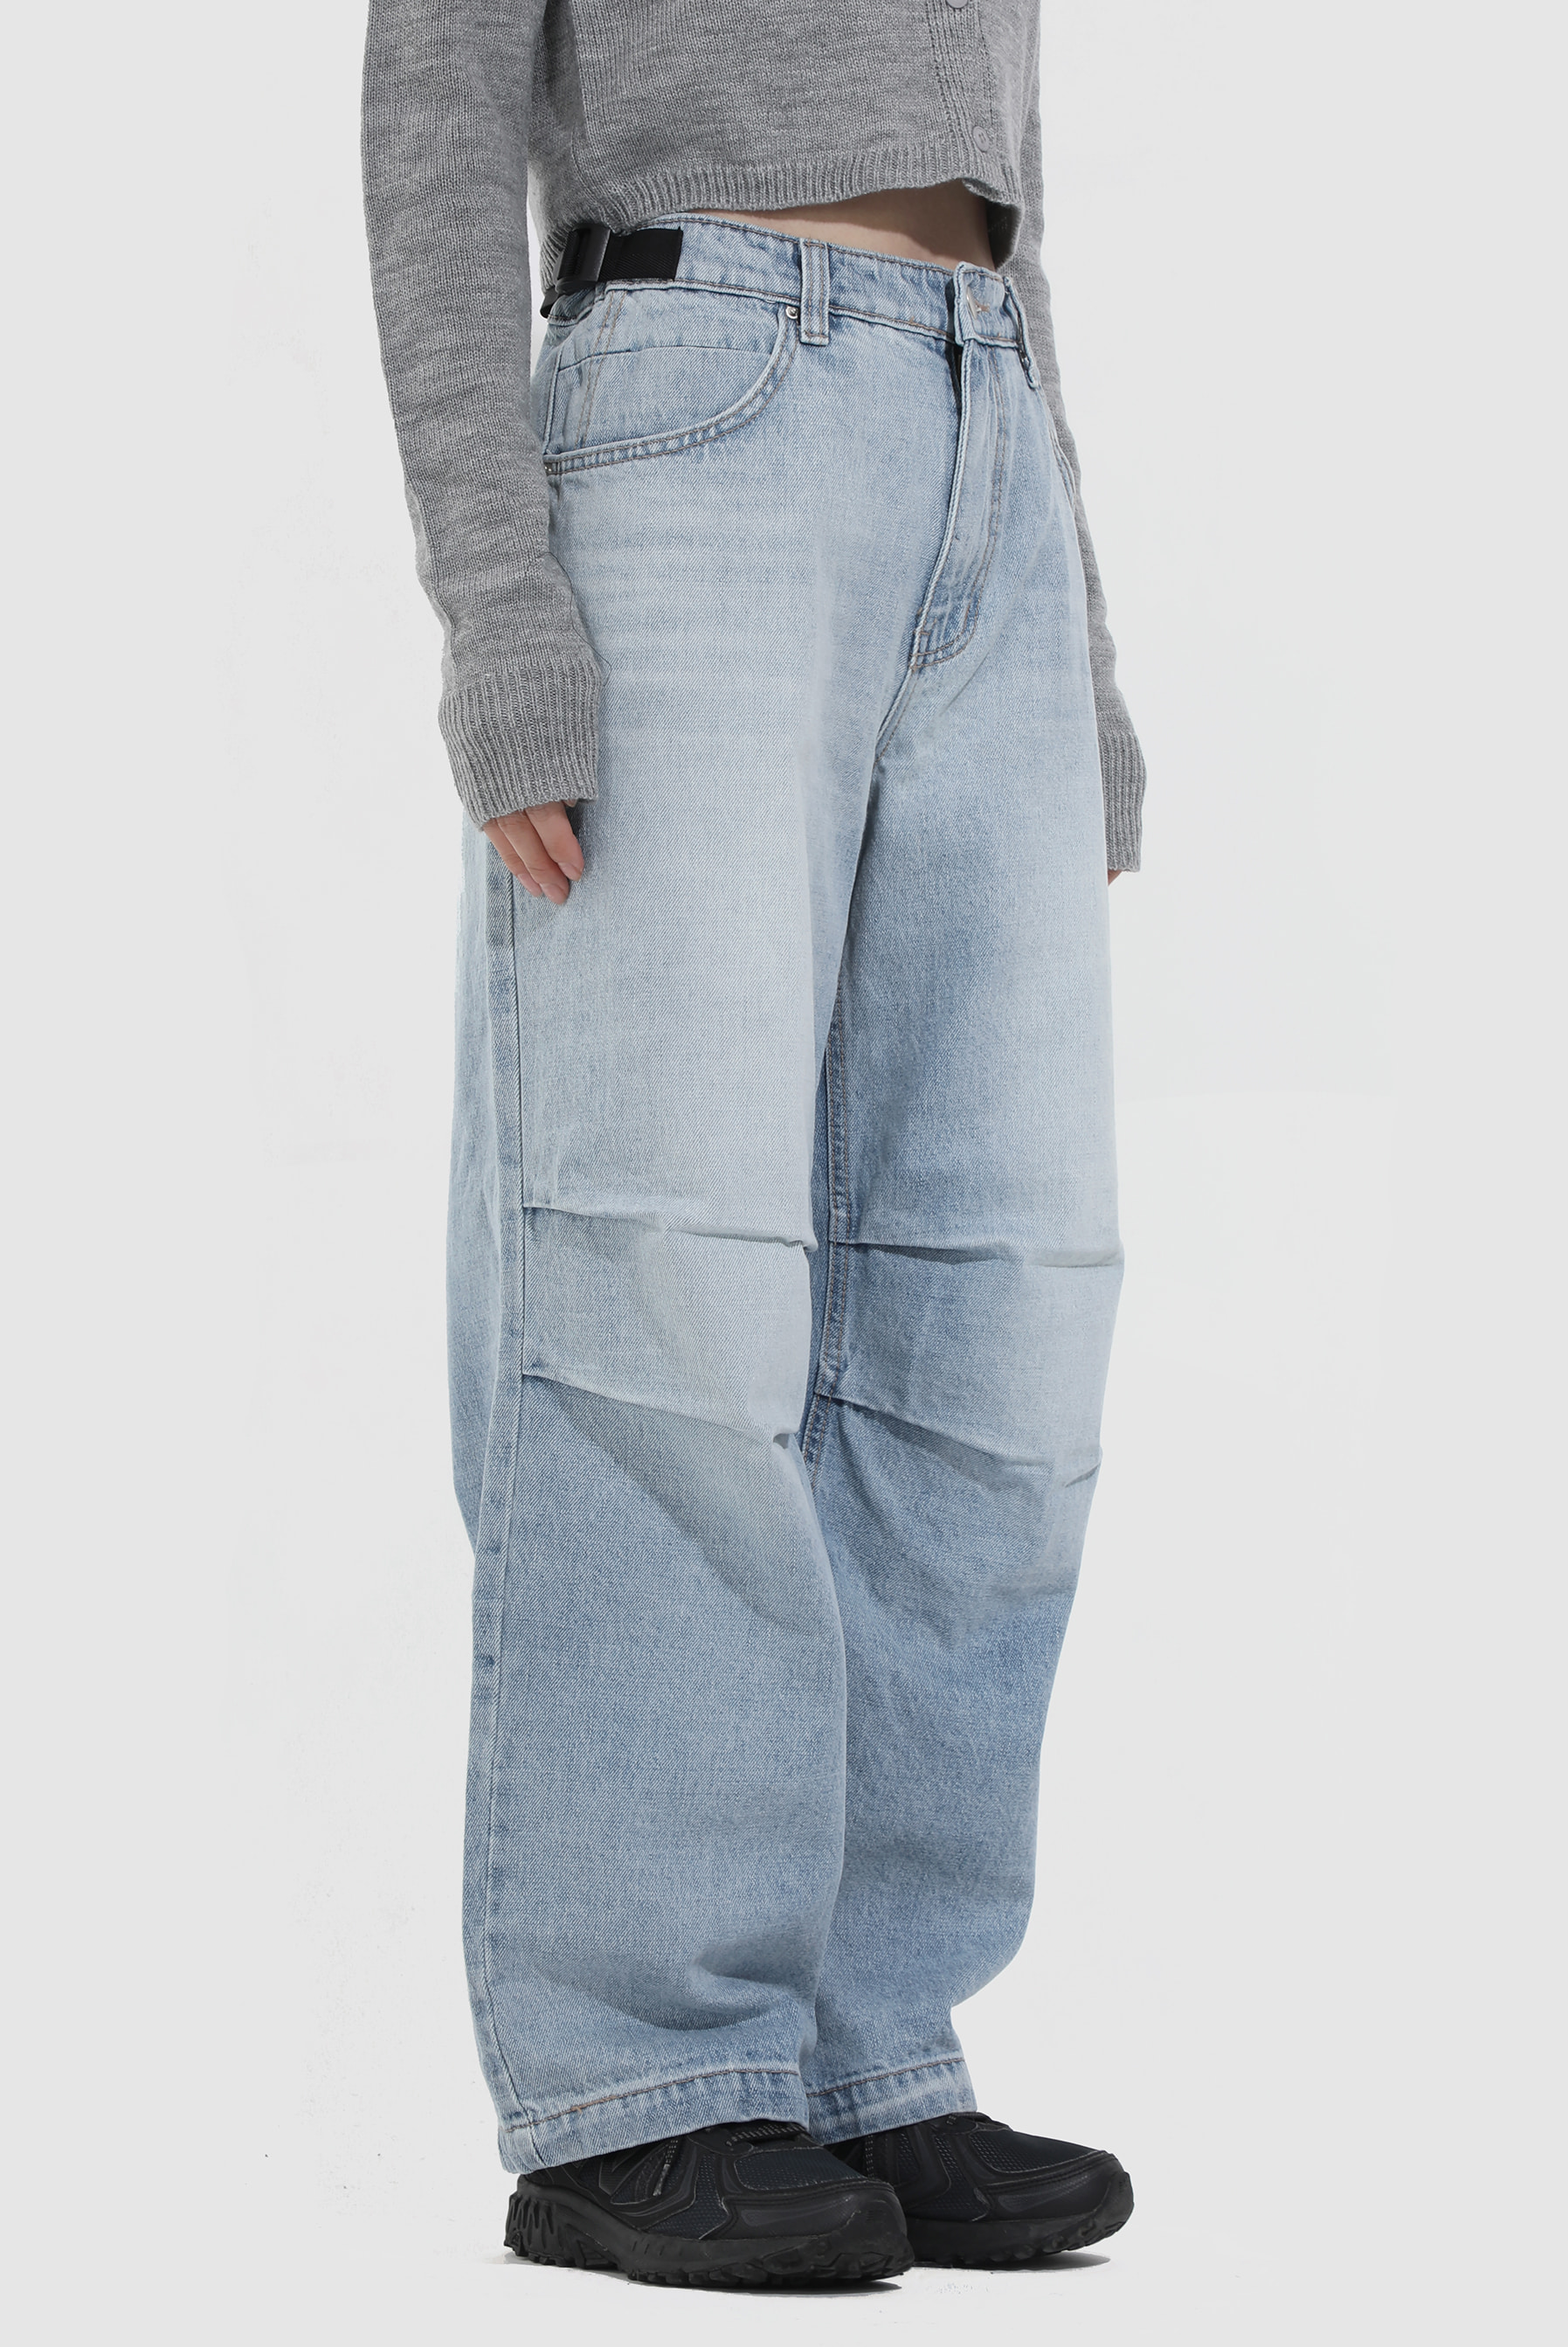 Belt_Strap Tuck Denim_Pant